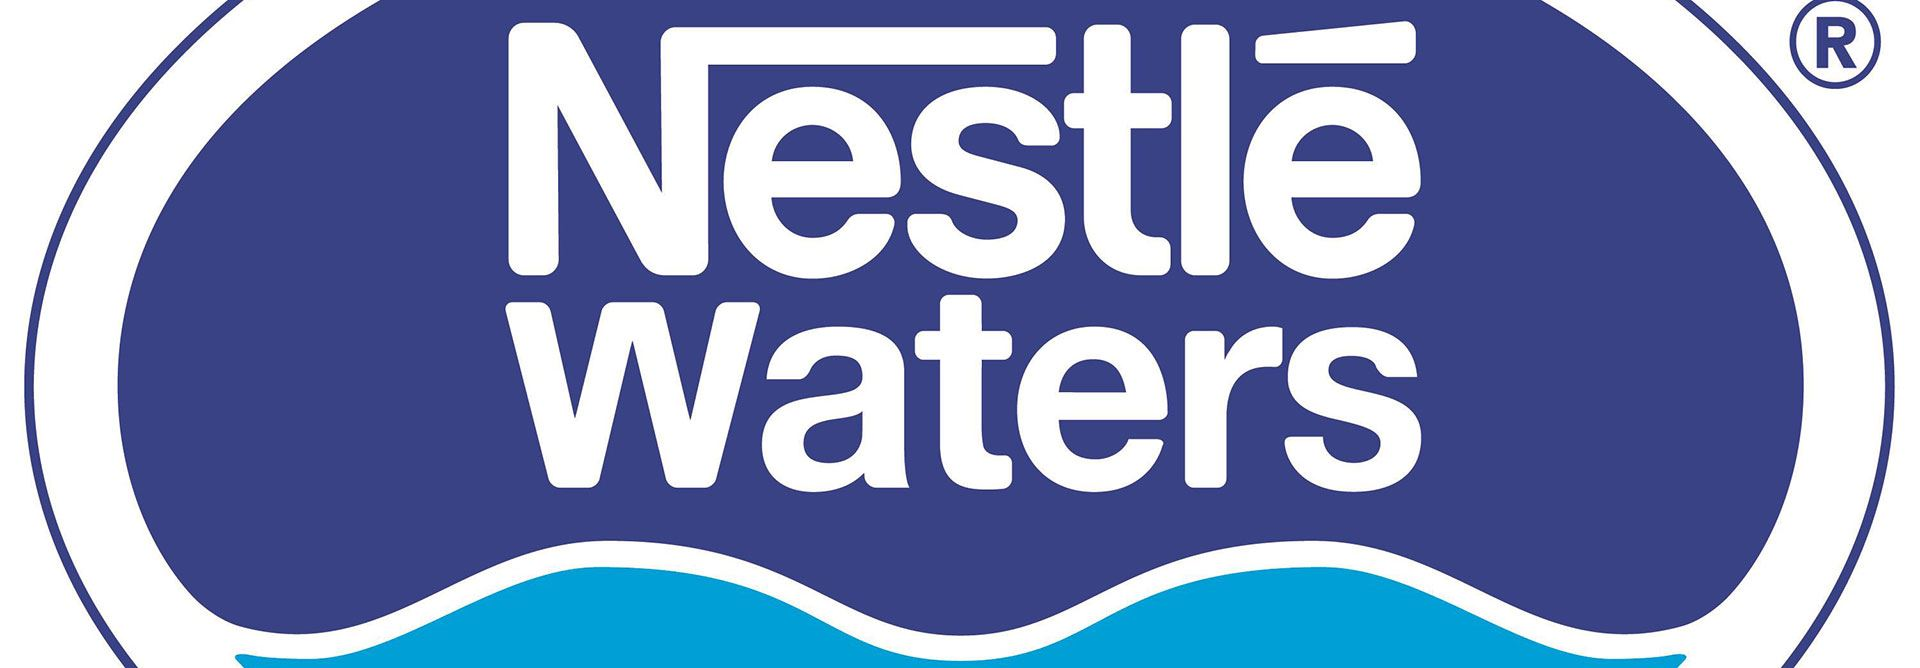 nestle-waters-logo-1920